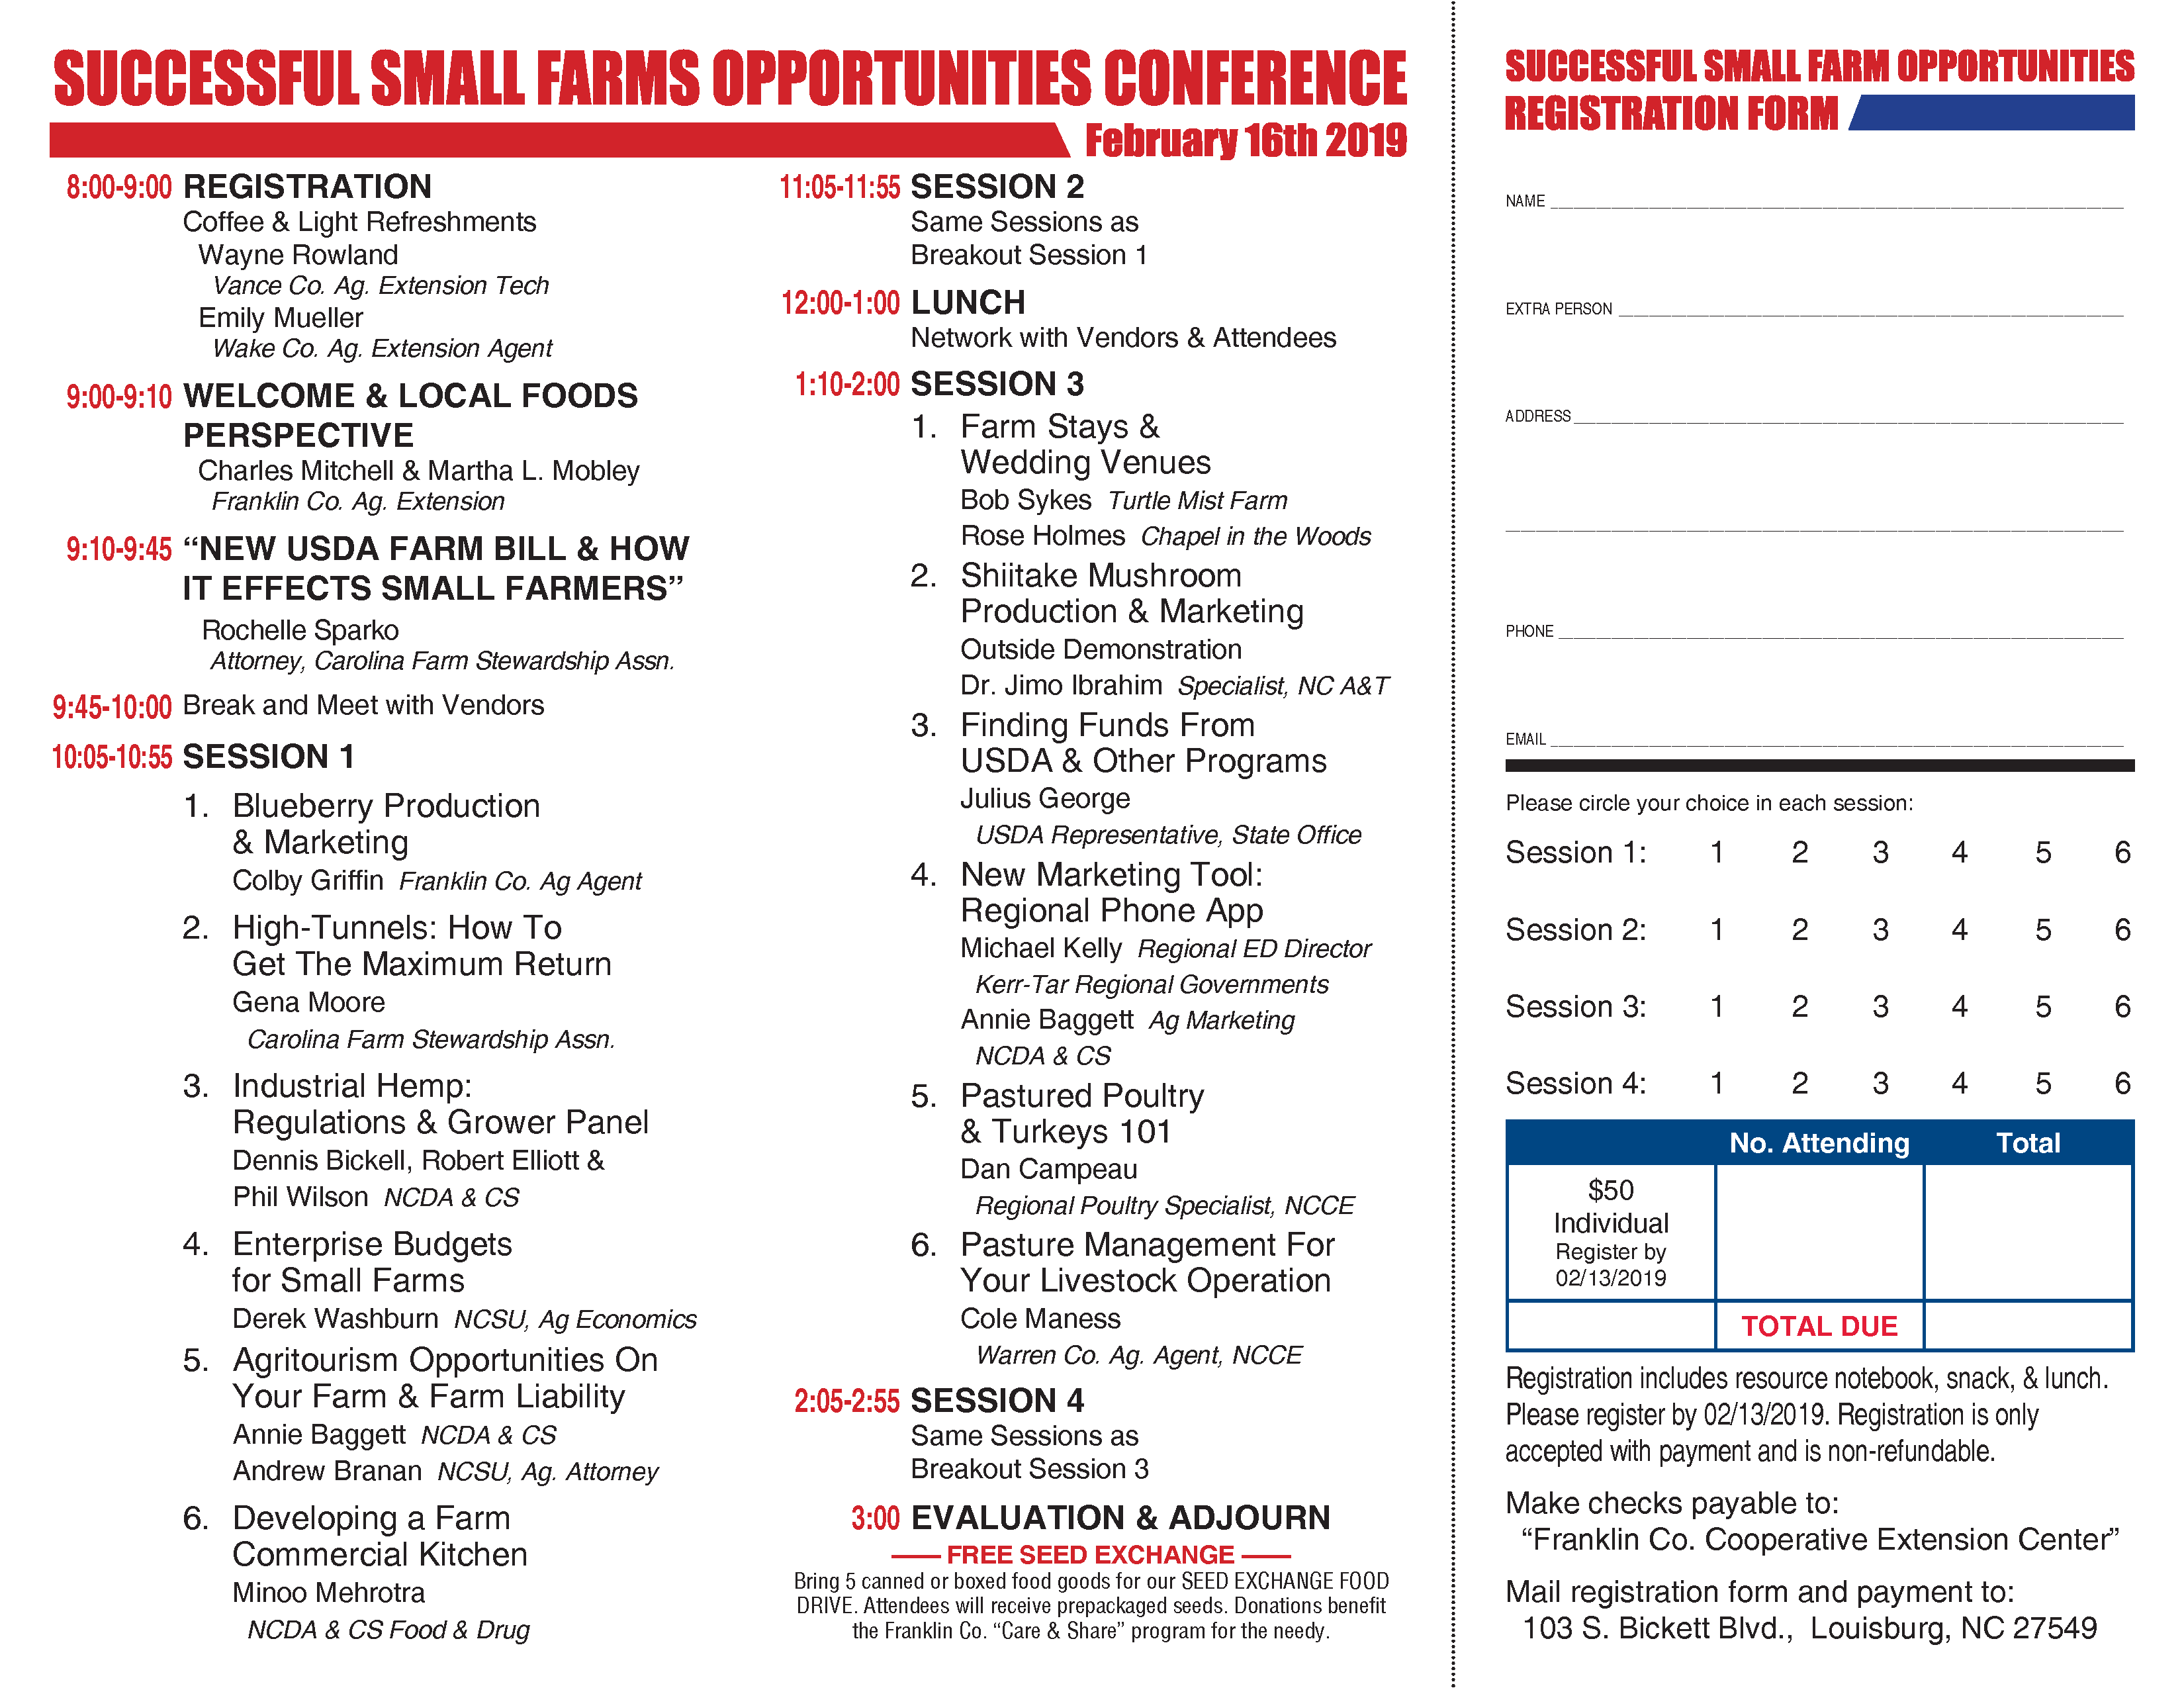 2019 Successful Small Farms Opportunities Conference schedule of events and registration form